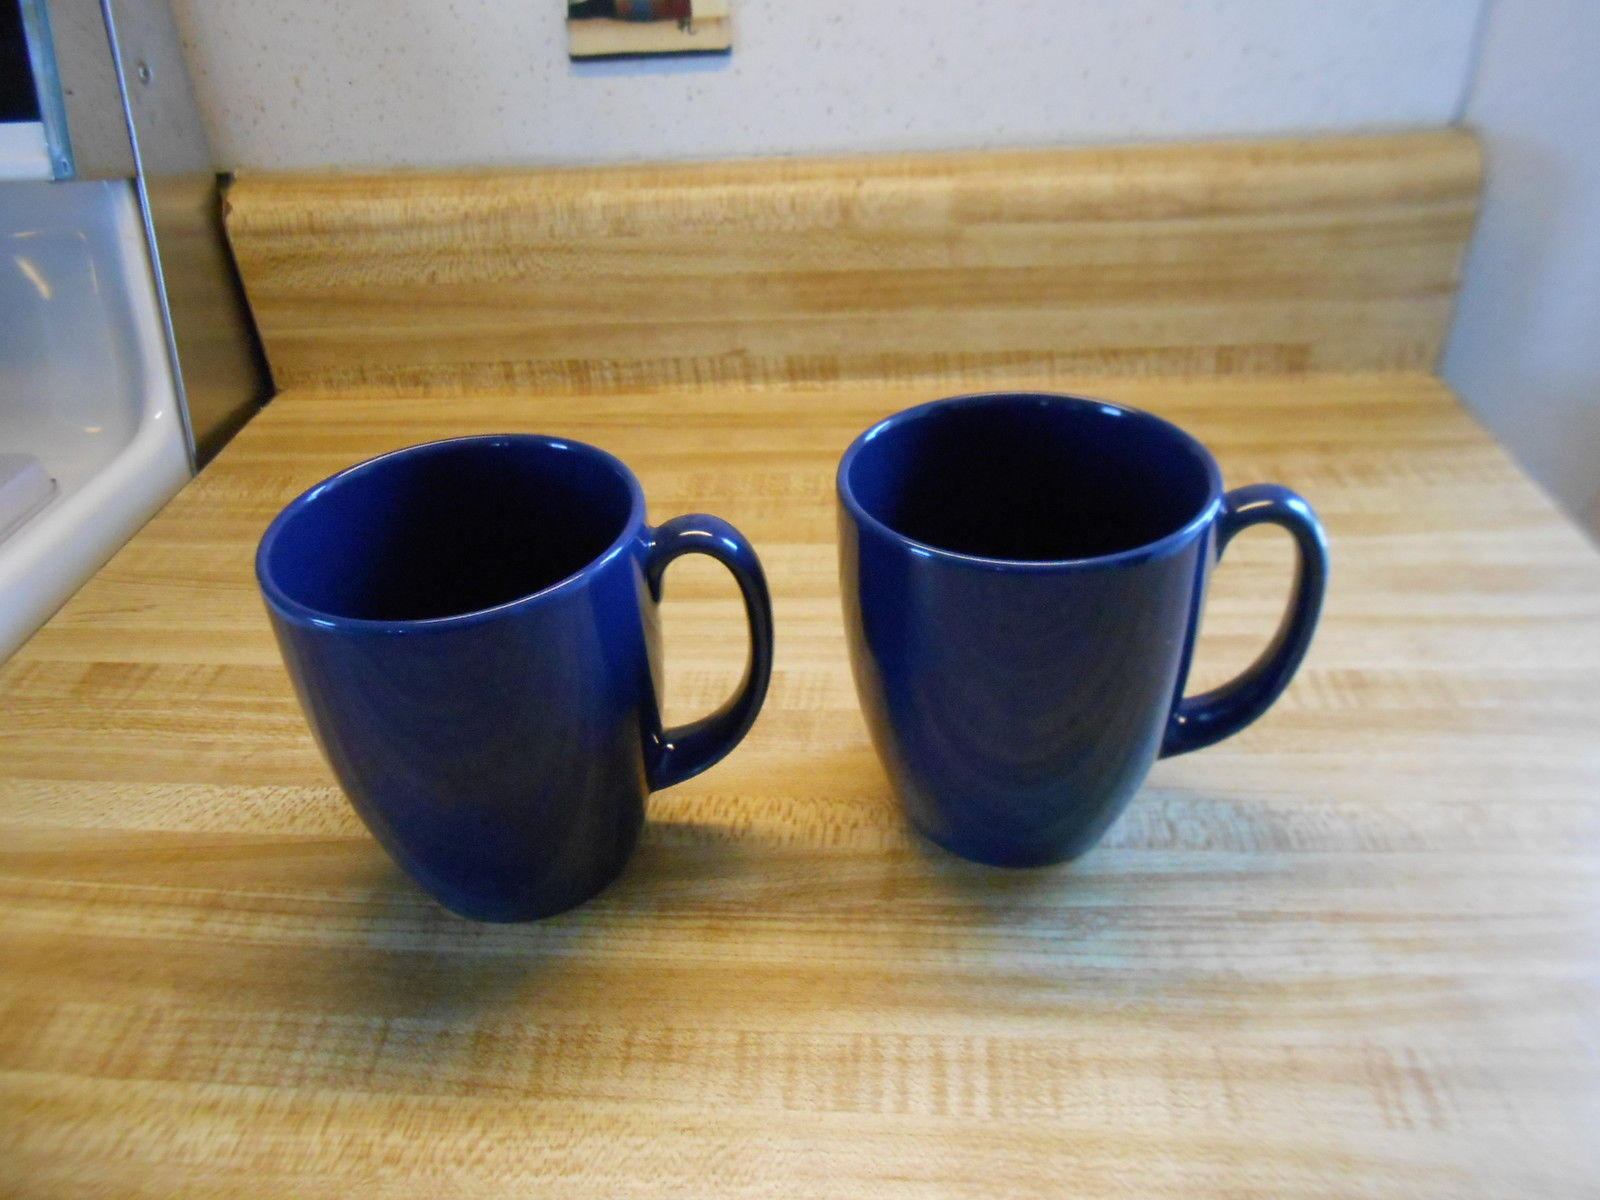 Primary image for corelle stoneware mugs coffee mugs navy blue stoneware coffee mugs 2 ct